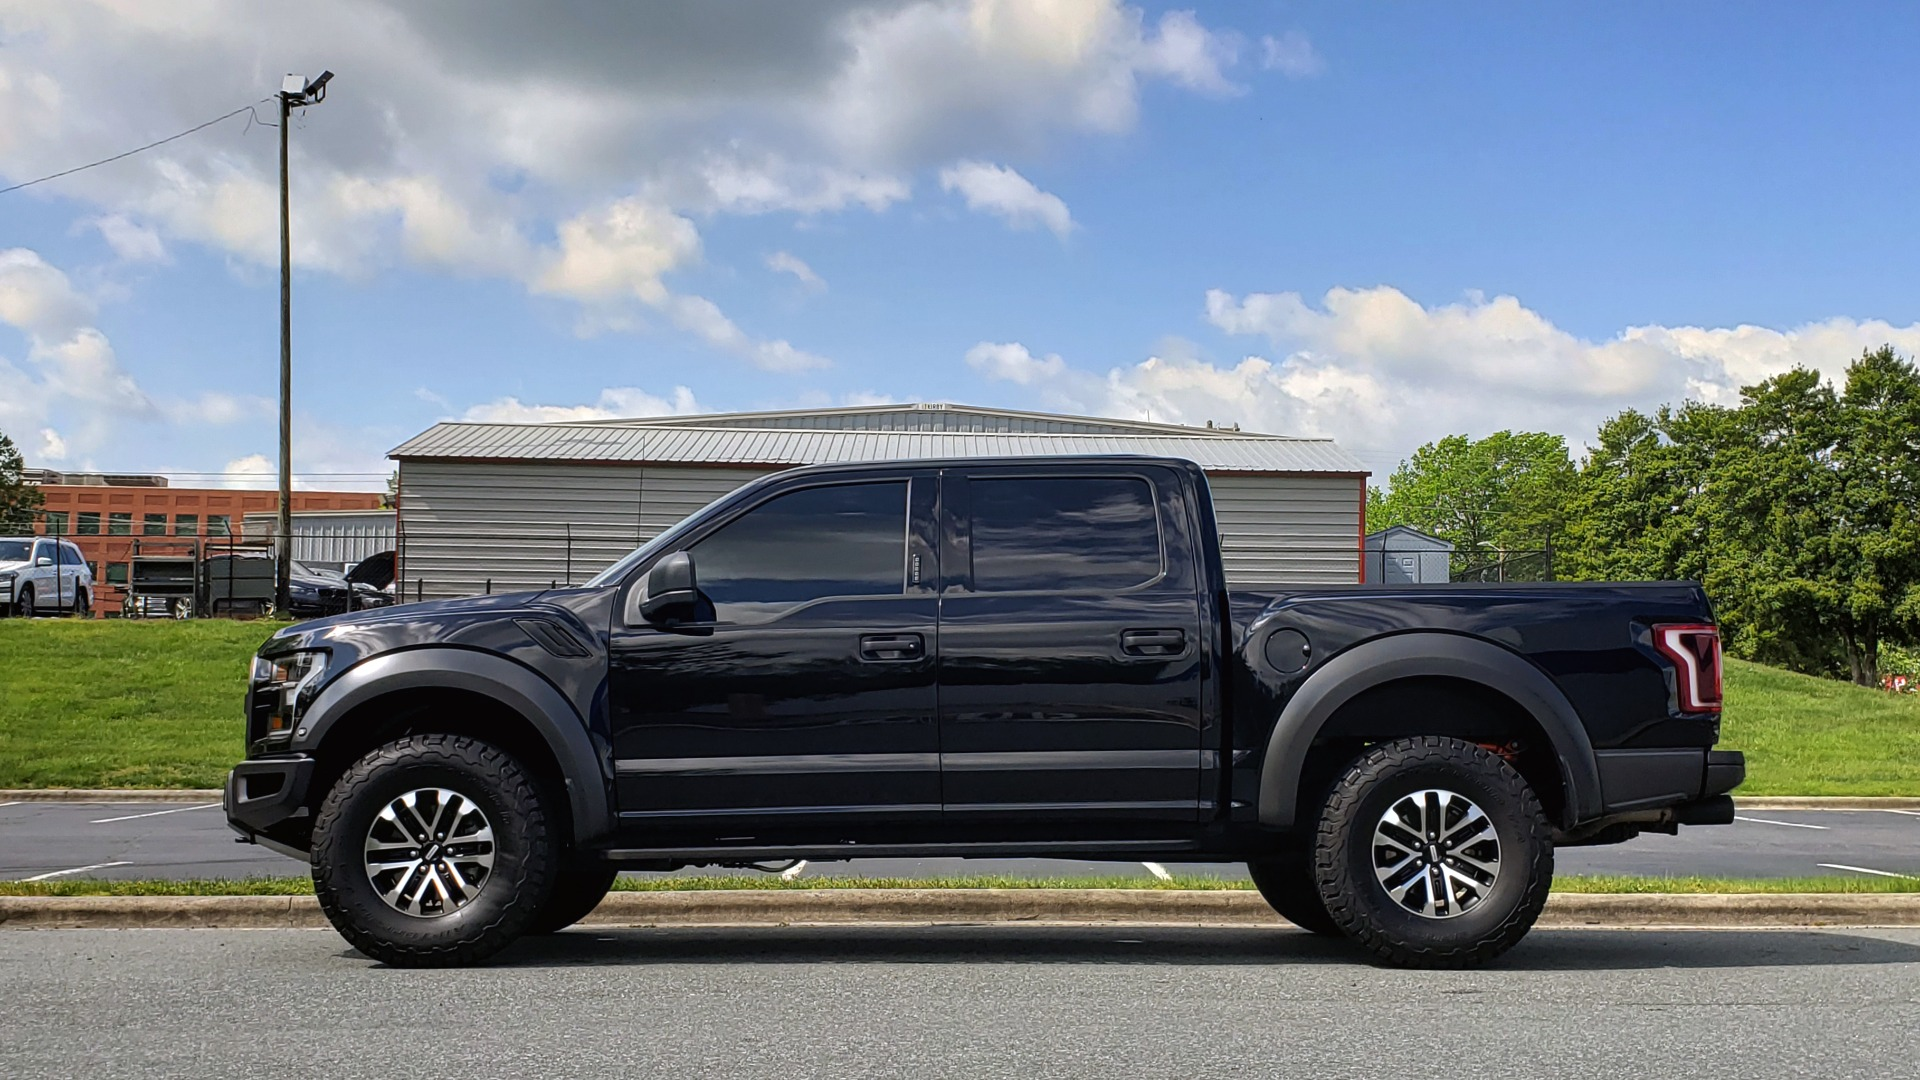 Used 2019 Ford F-150 RAPTOR CREW CAB 4X4 5.5' BOX / REMOTE START / TAILGATE STEP for sale Sold at Formula Imports in Charlotte NC 28227 2